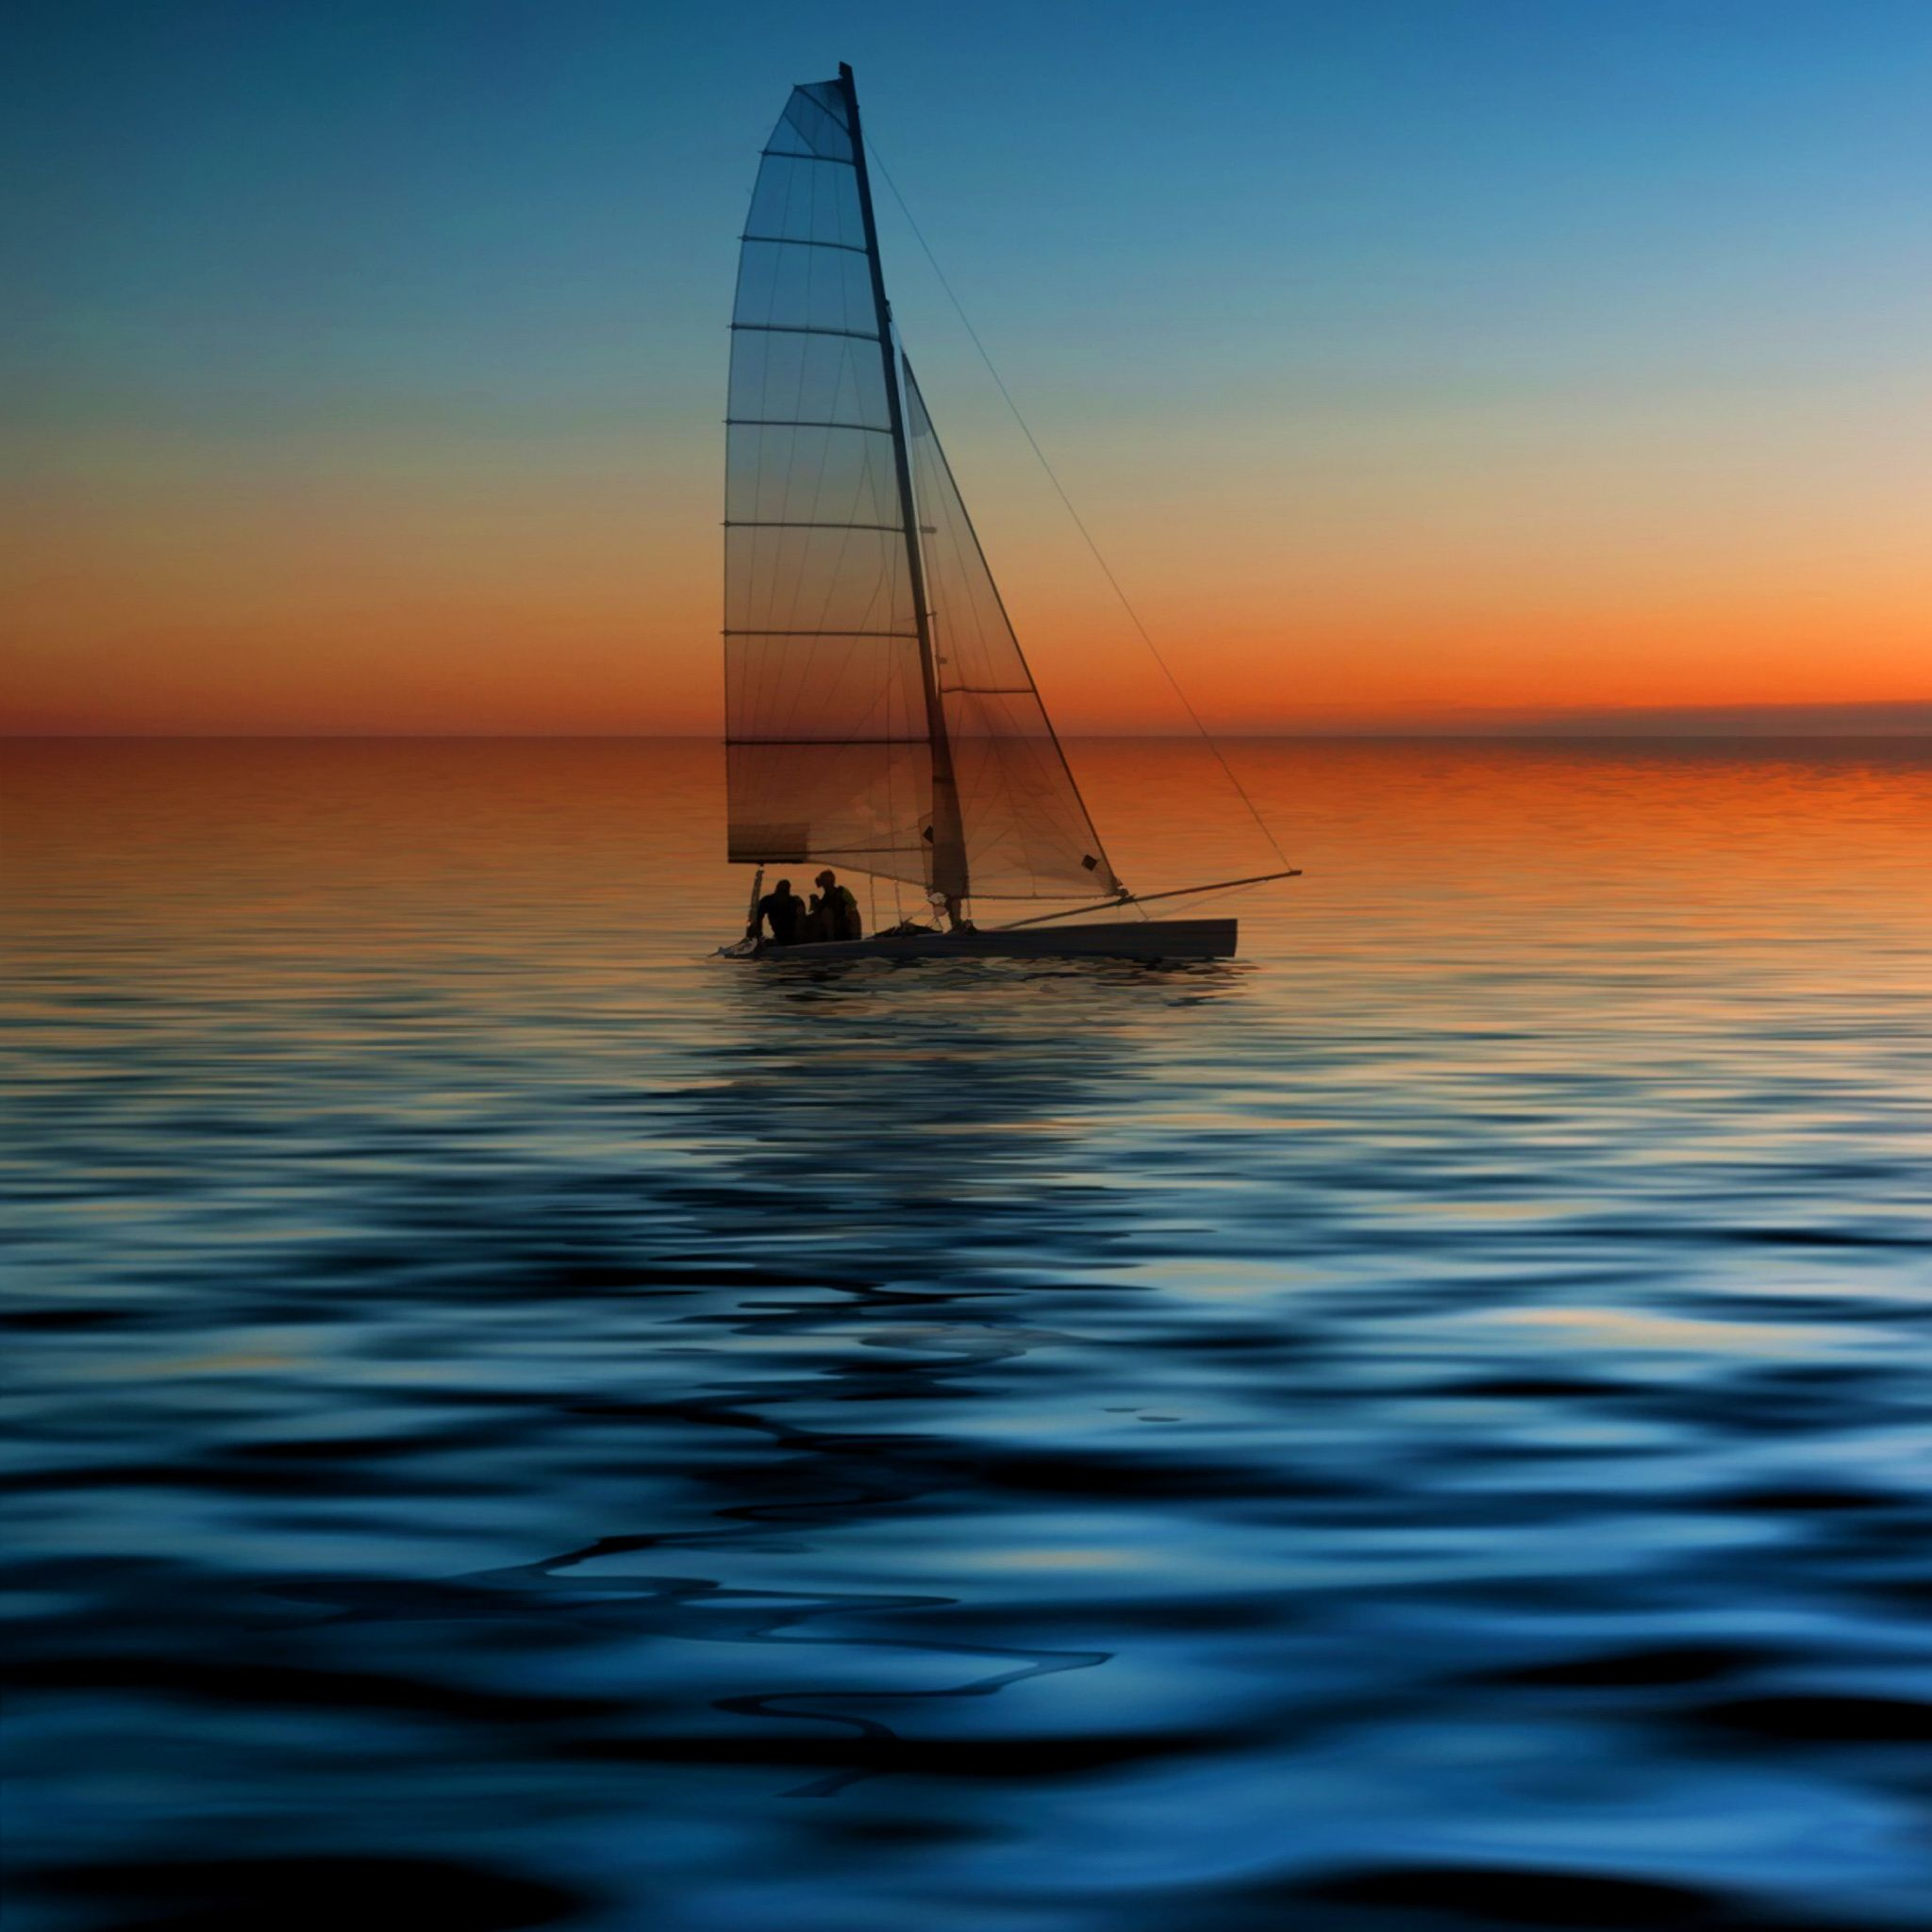 Wallpapers Tagged With Sailing Table Skies Chairs Vines House